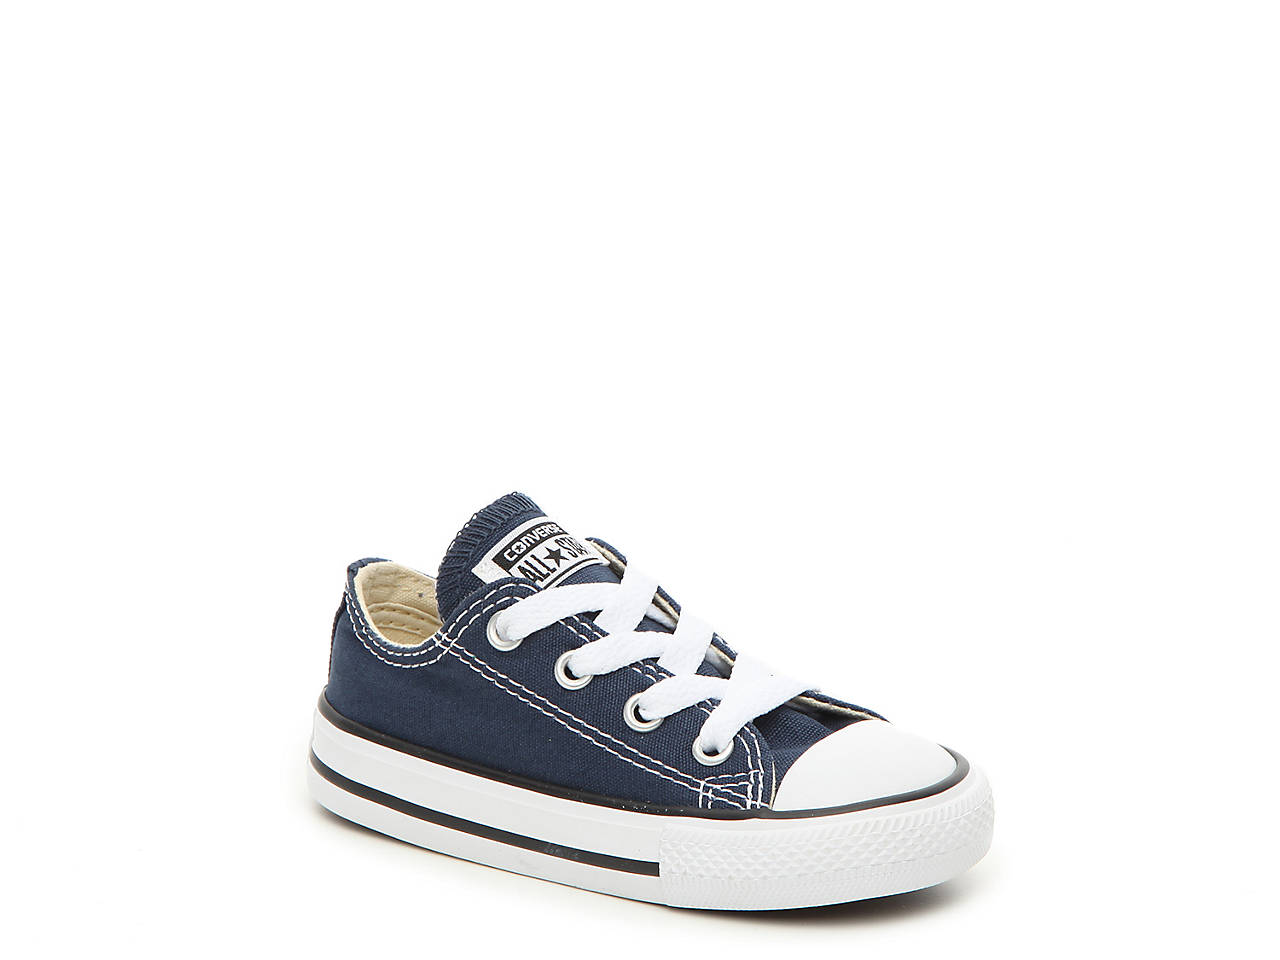 158f30de0f6477 Converse Chuck Taylor All Star Infant   Toddler Sneaker Kids Shoes